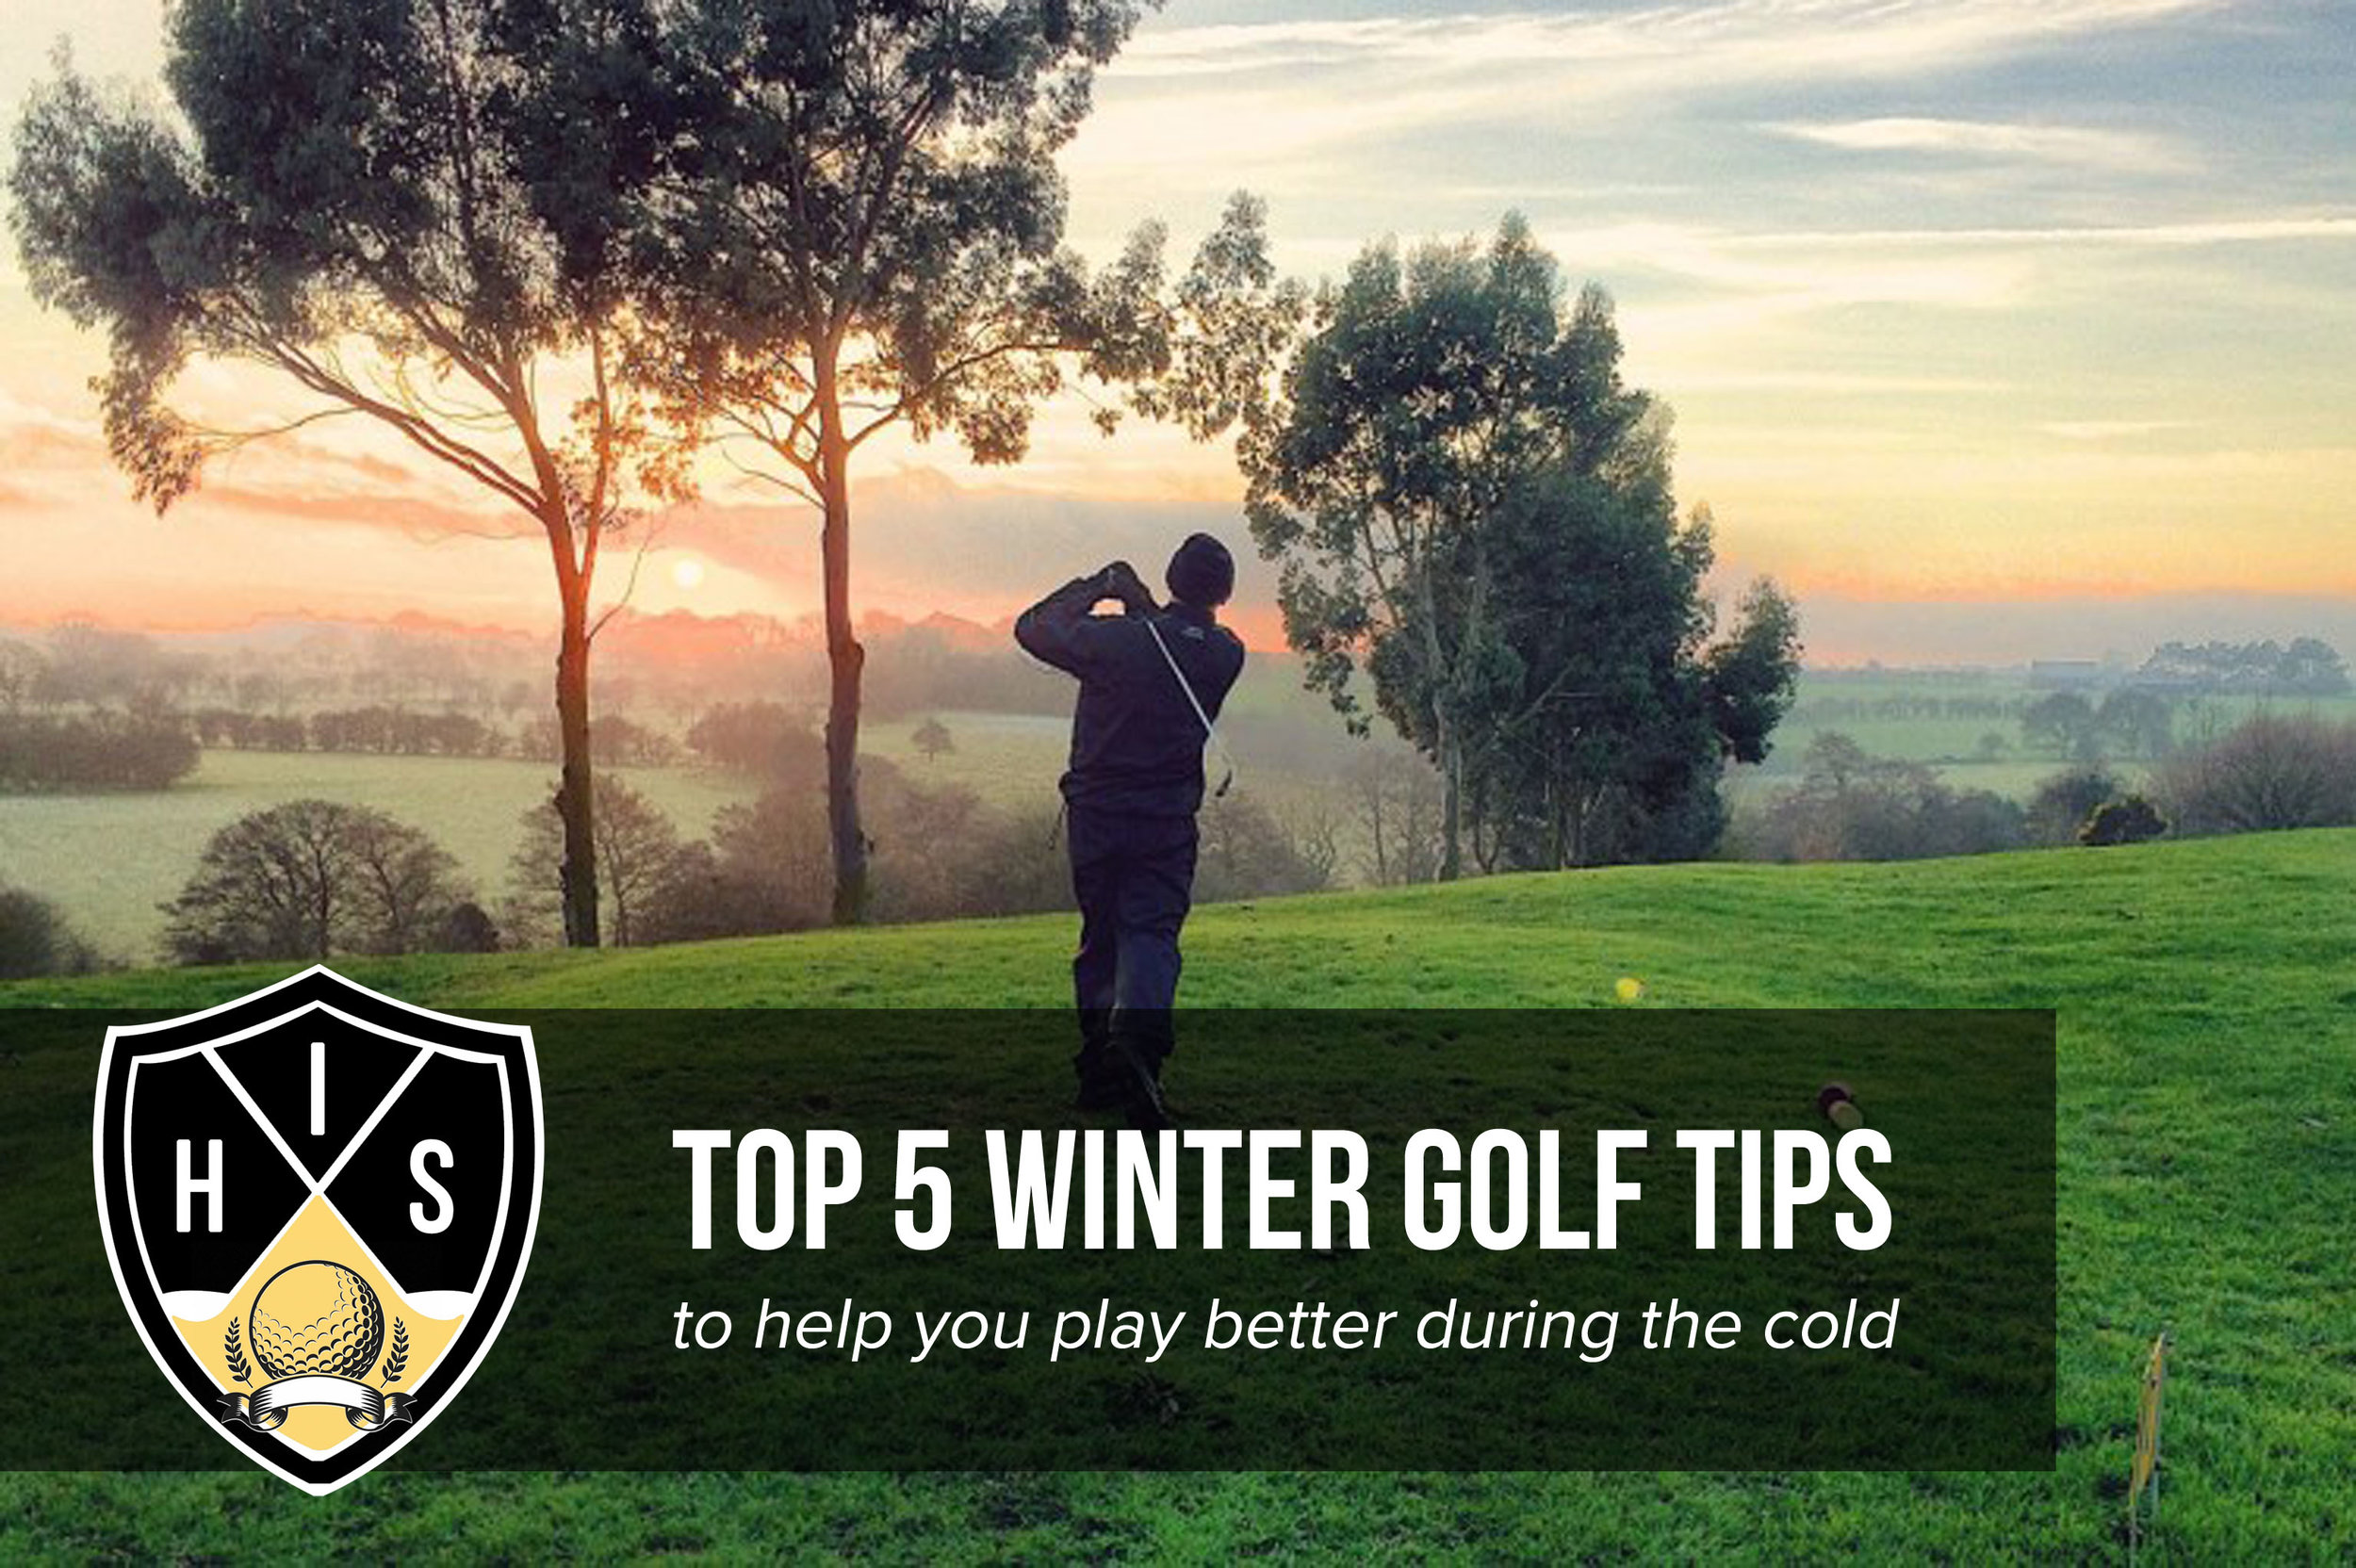 How to play better golf in winter this year with these top 5 winter golf tips